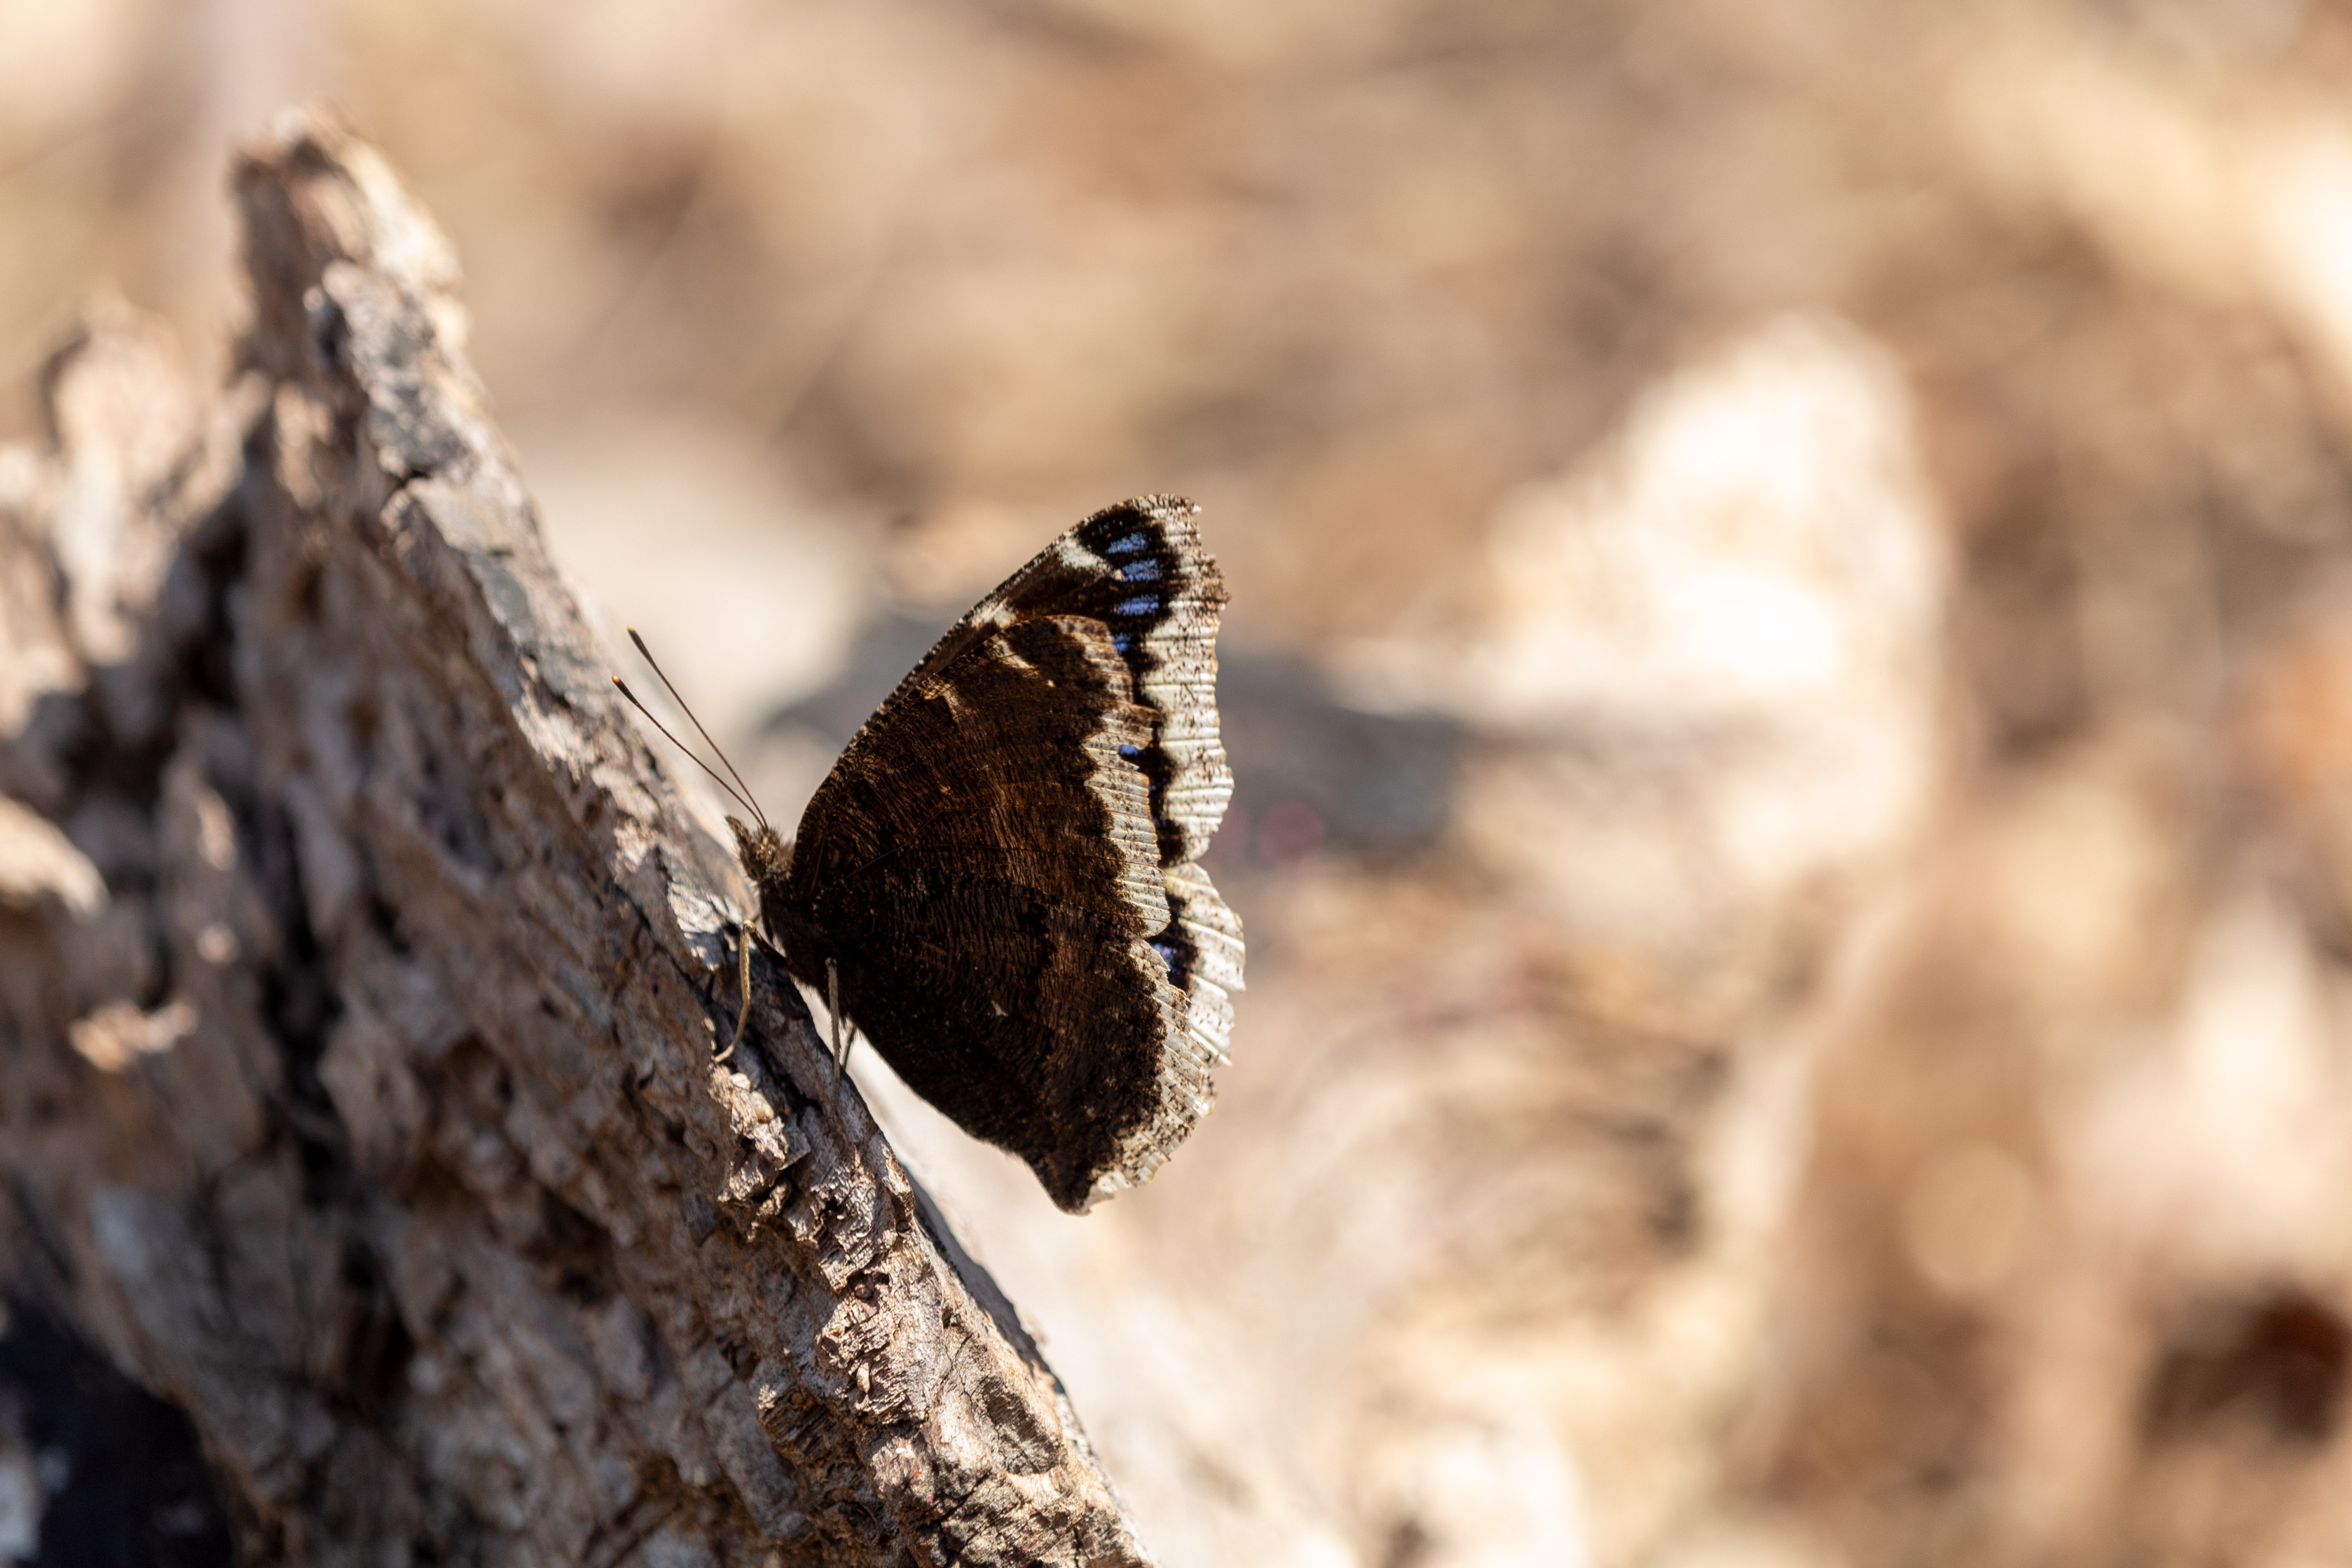 Butterfly with brown, blue, and white wings sitting on a log